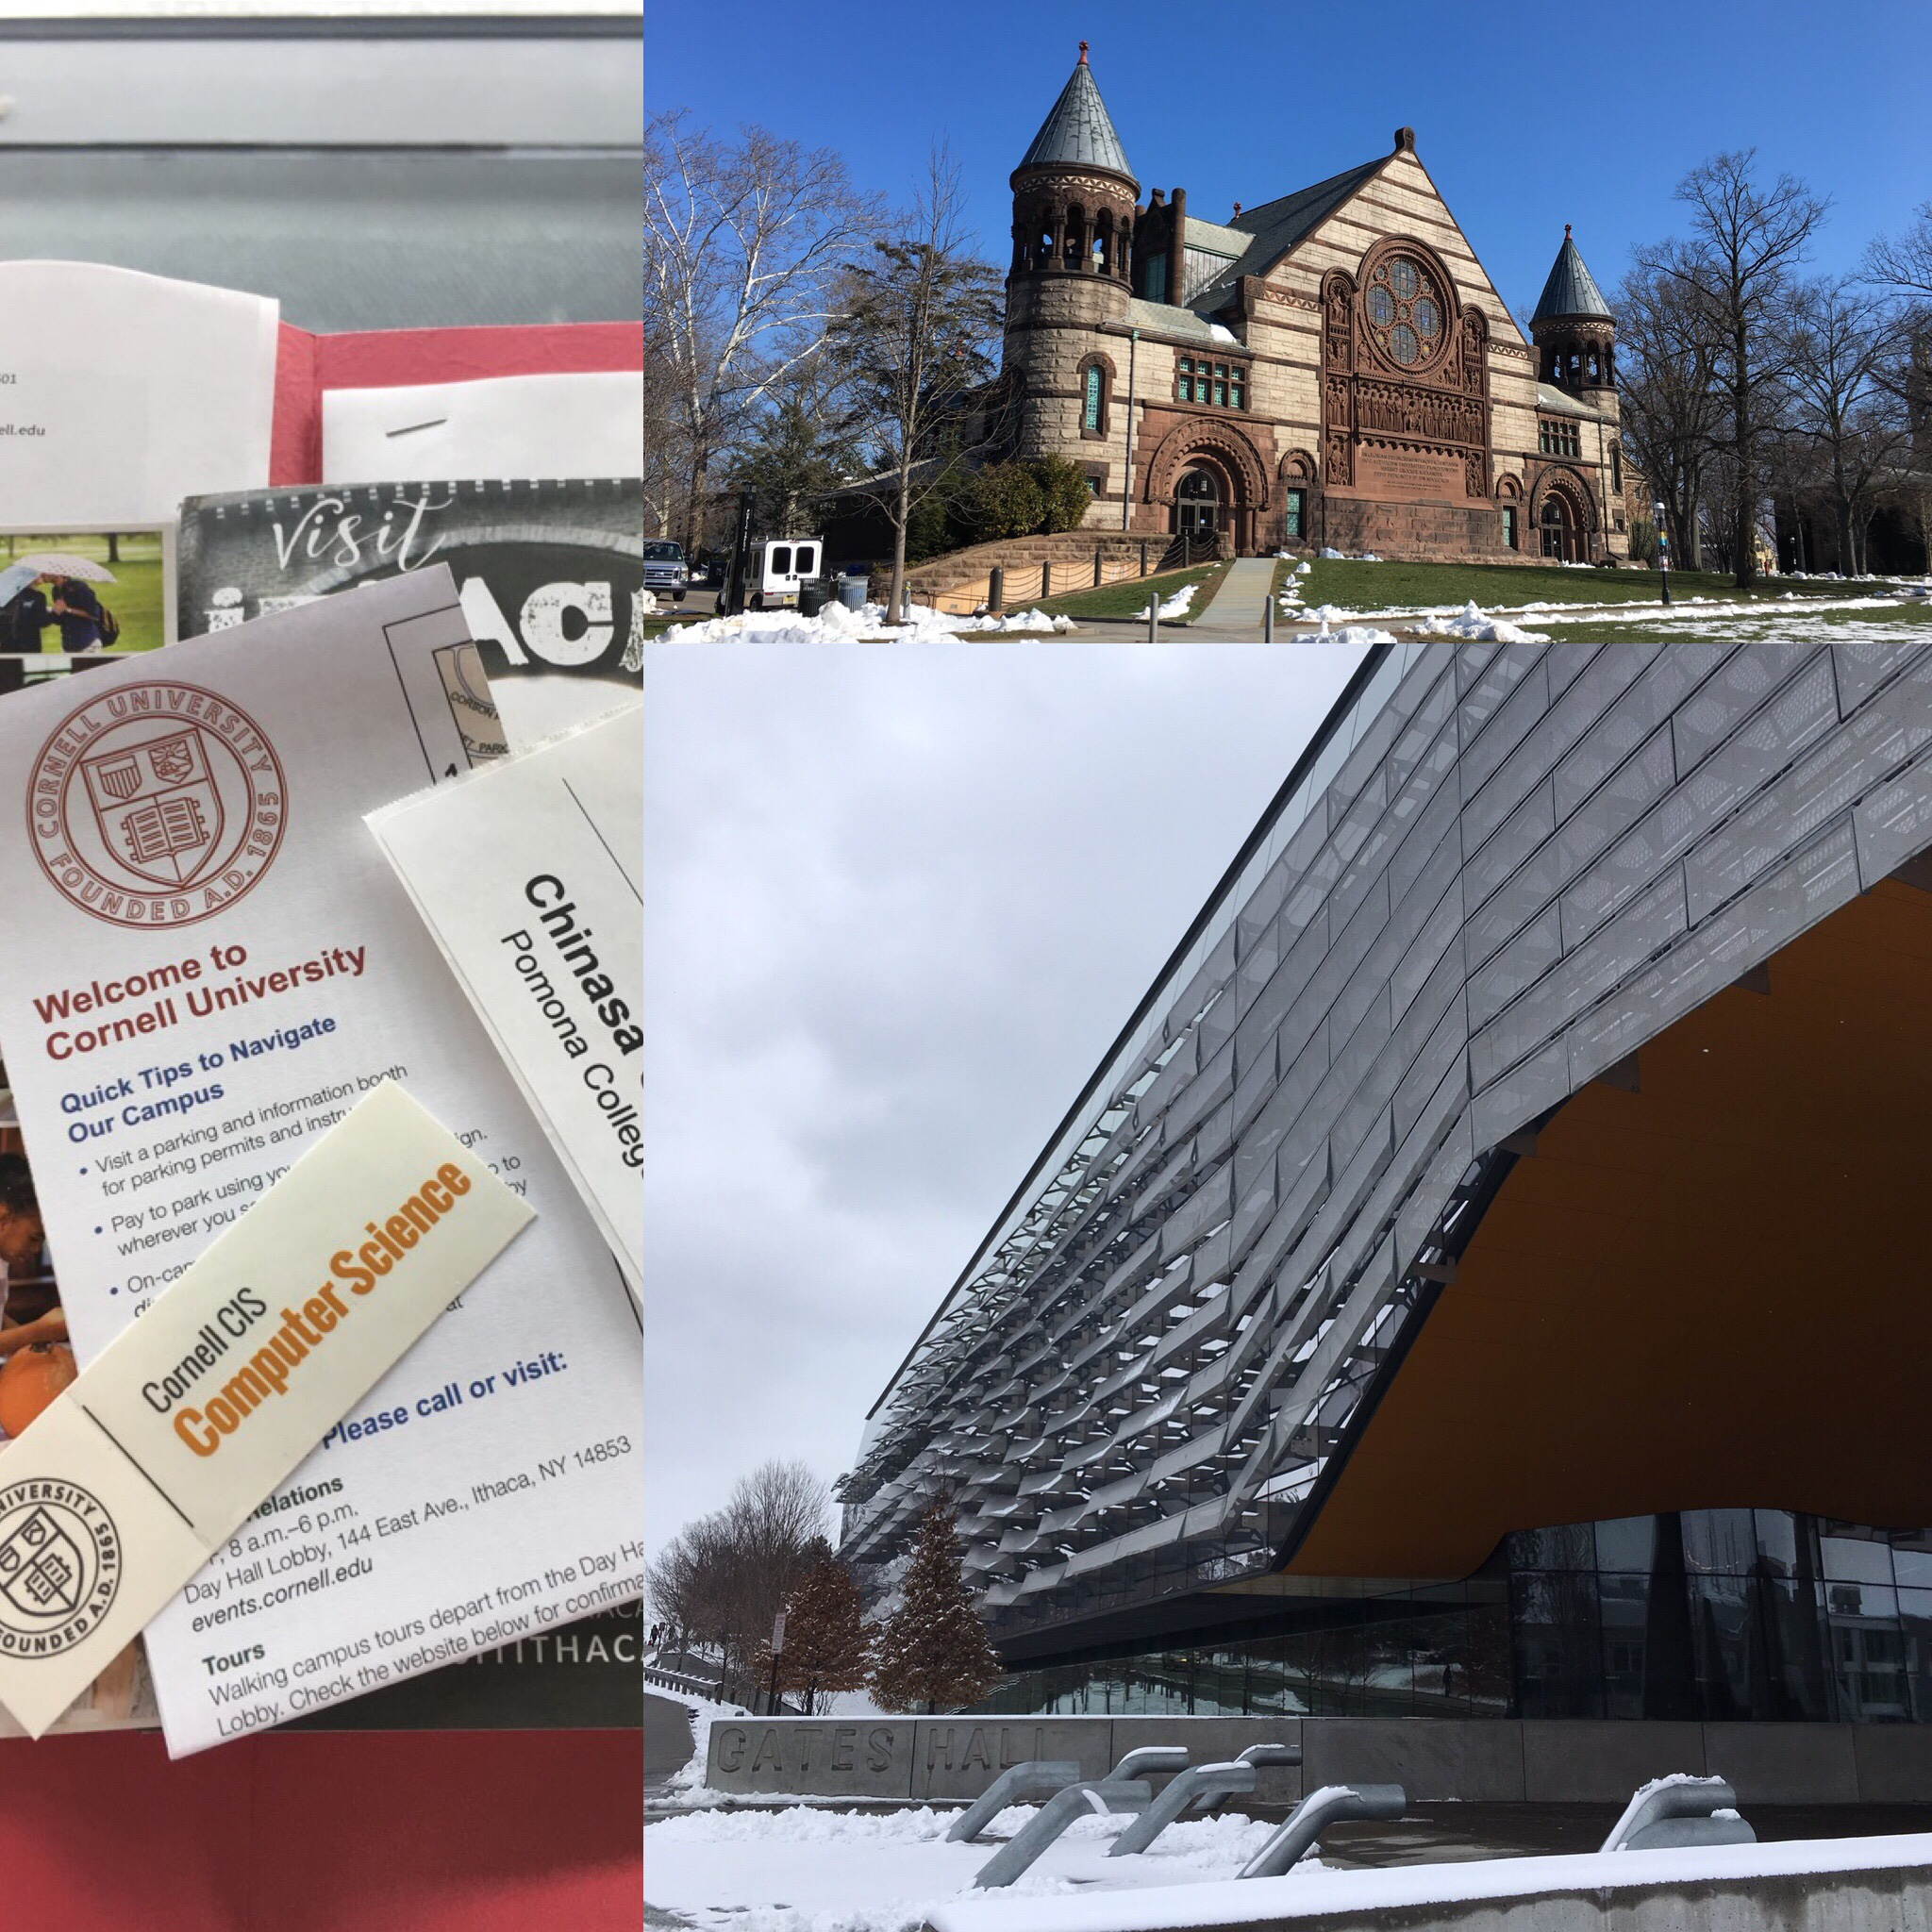 Collage of buildings at Cornell and Princeton